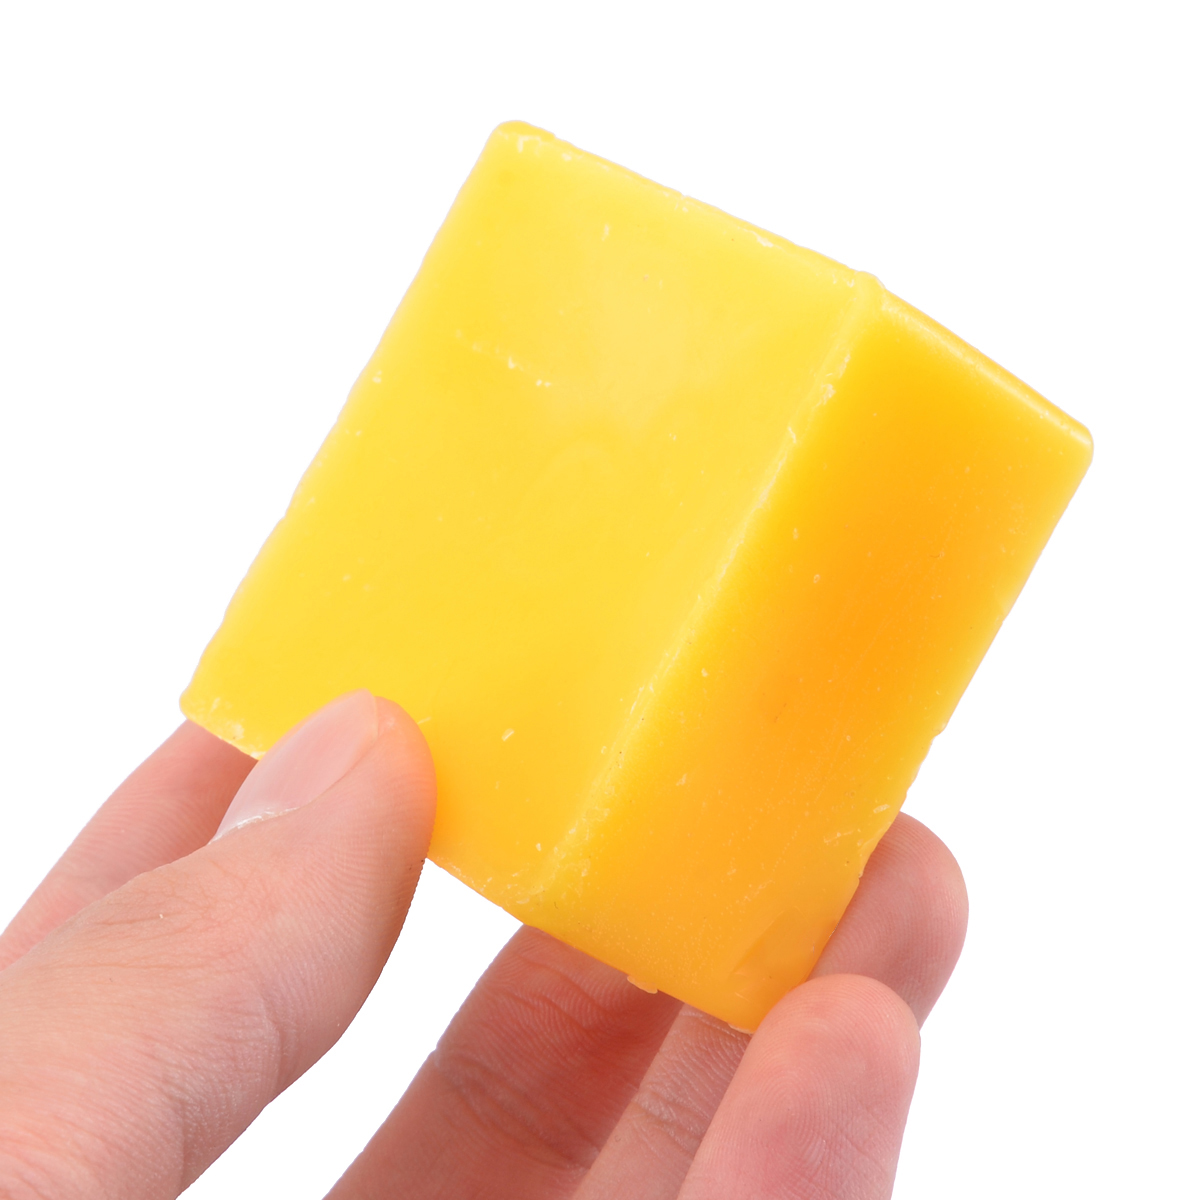 1 Piece 50g Food Cosmetic Grade Organic Beeswax Filtered Natural Pure Bees Wax Bars 1.76oz For Printing/Tanning Industry